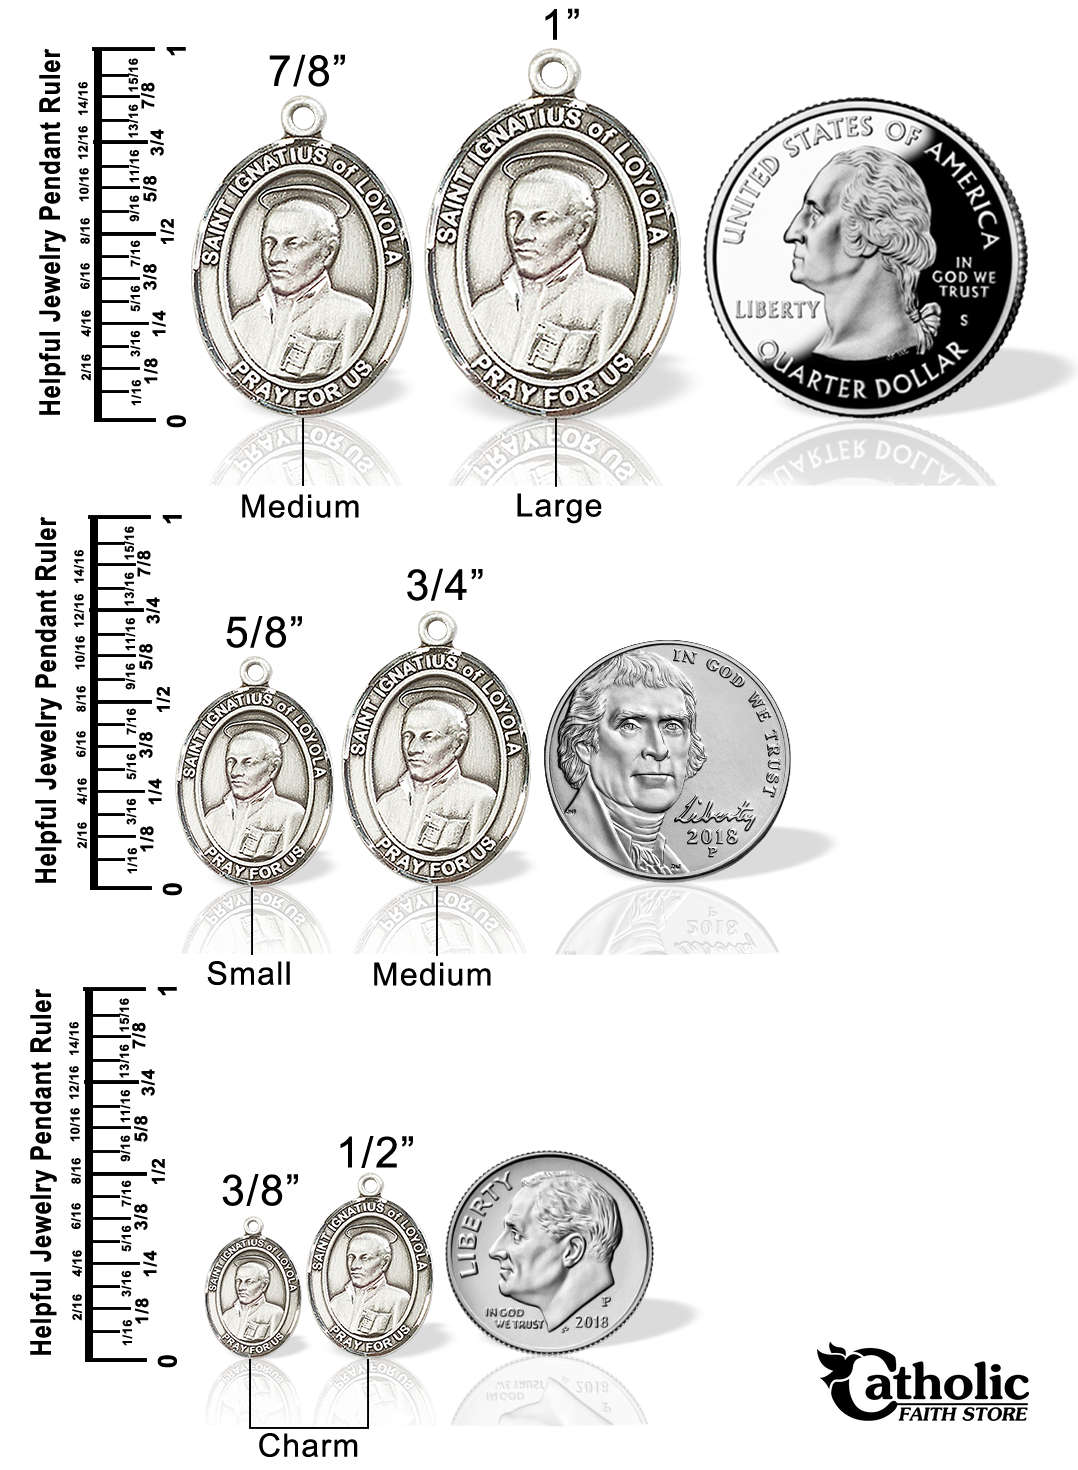 Compare pendants to quarter, nickel and dime